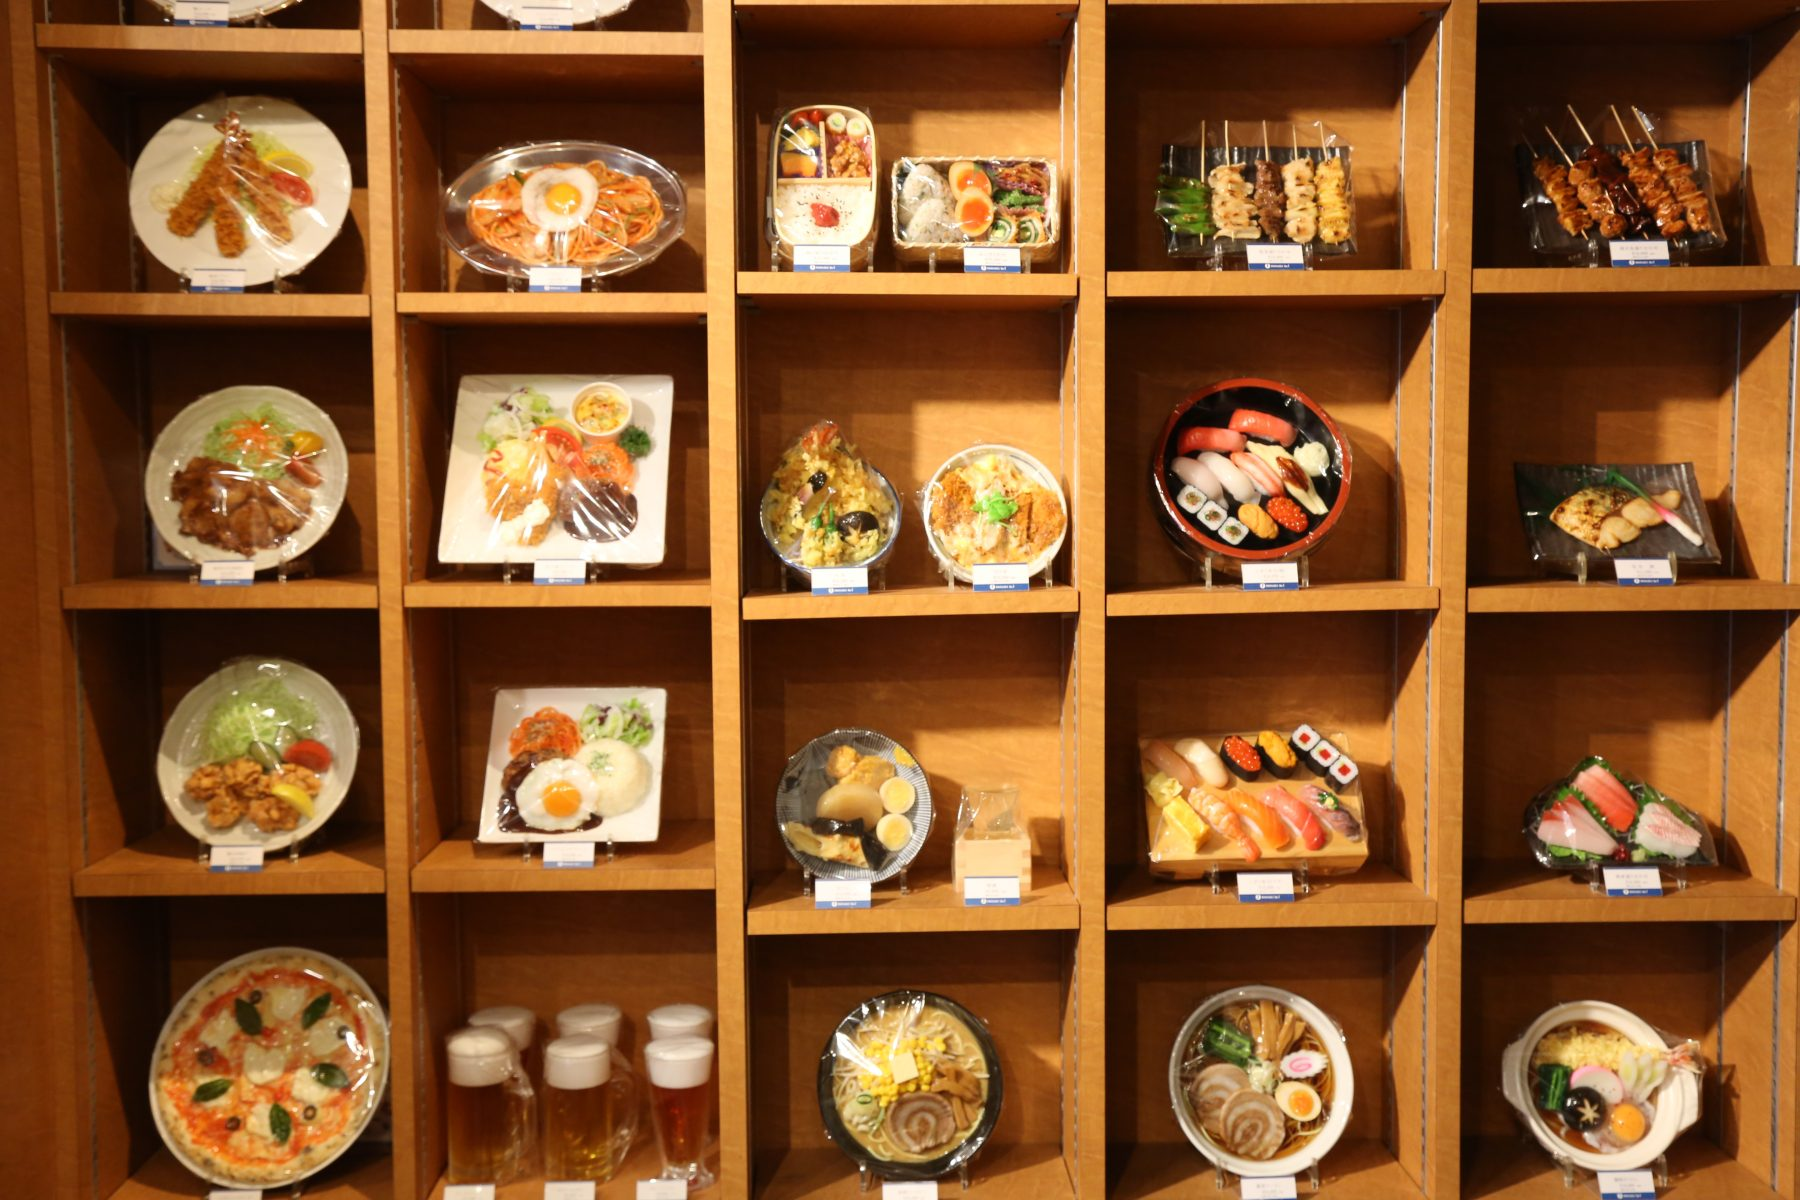 5G1A0216-1800x1200 How to Make Japan's Famous Plastic Food